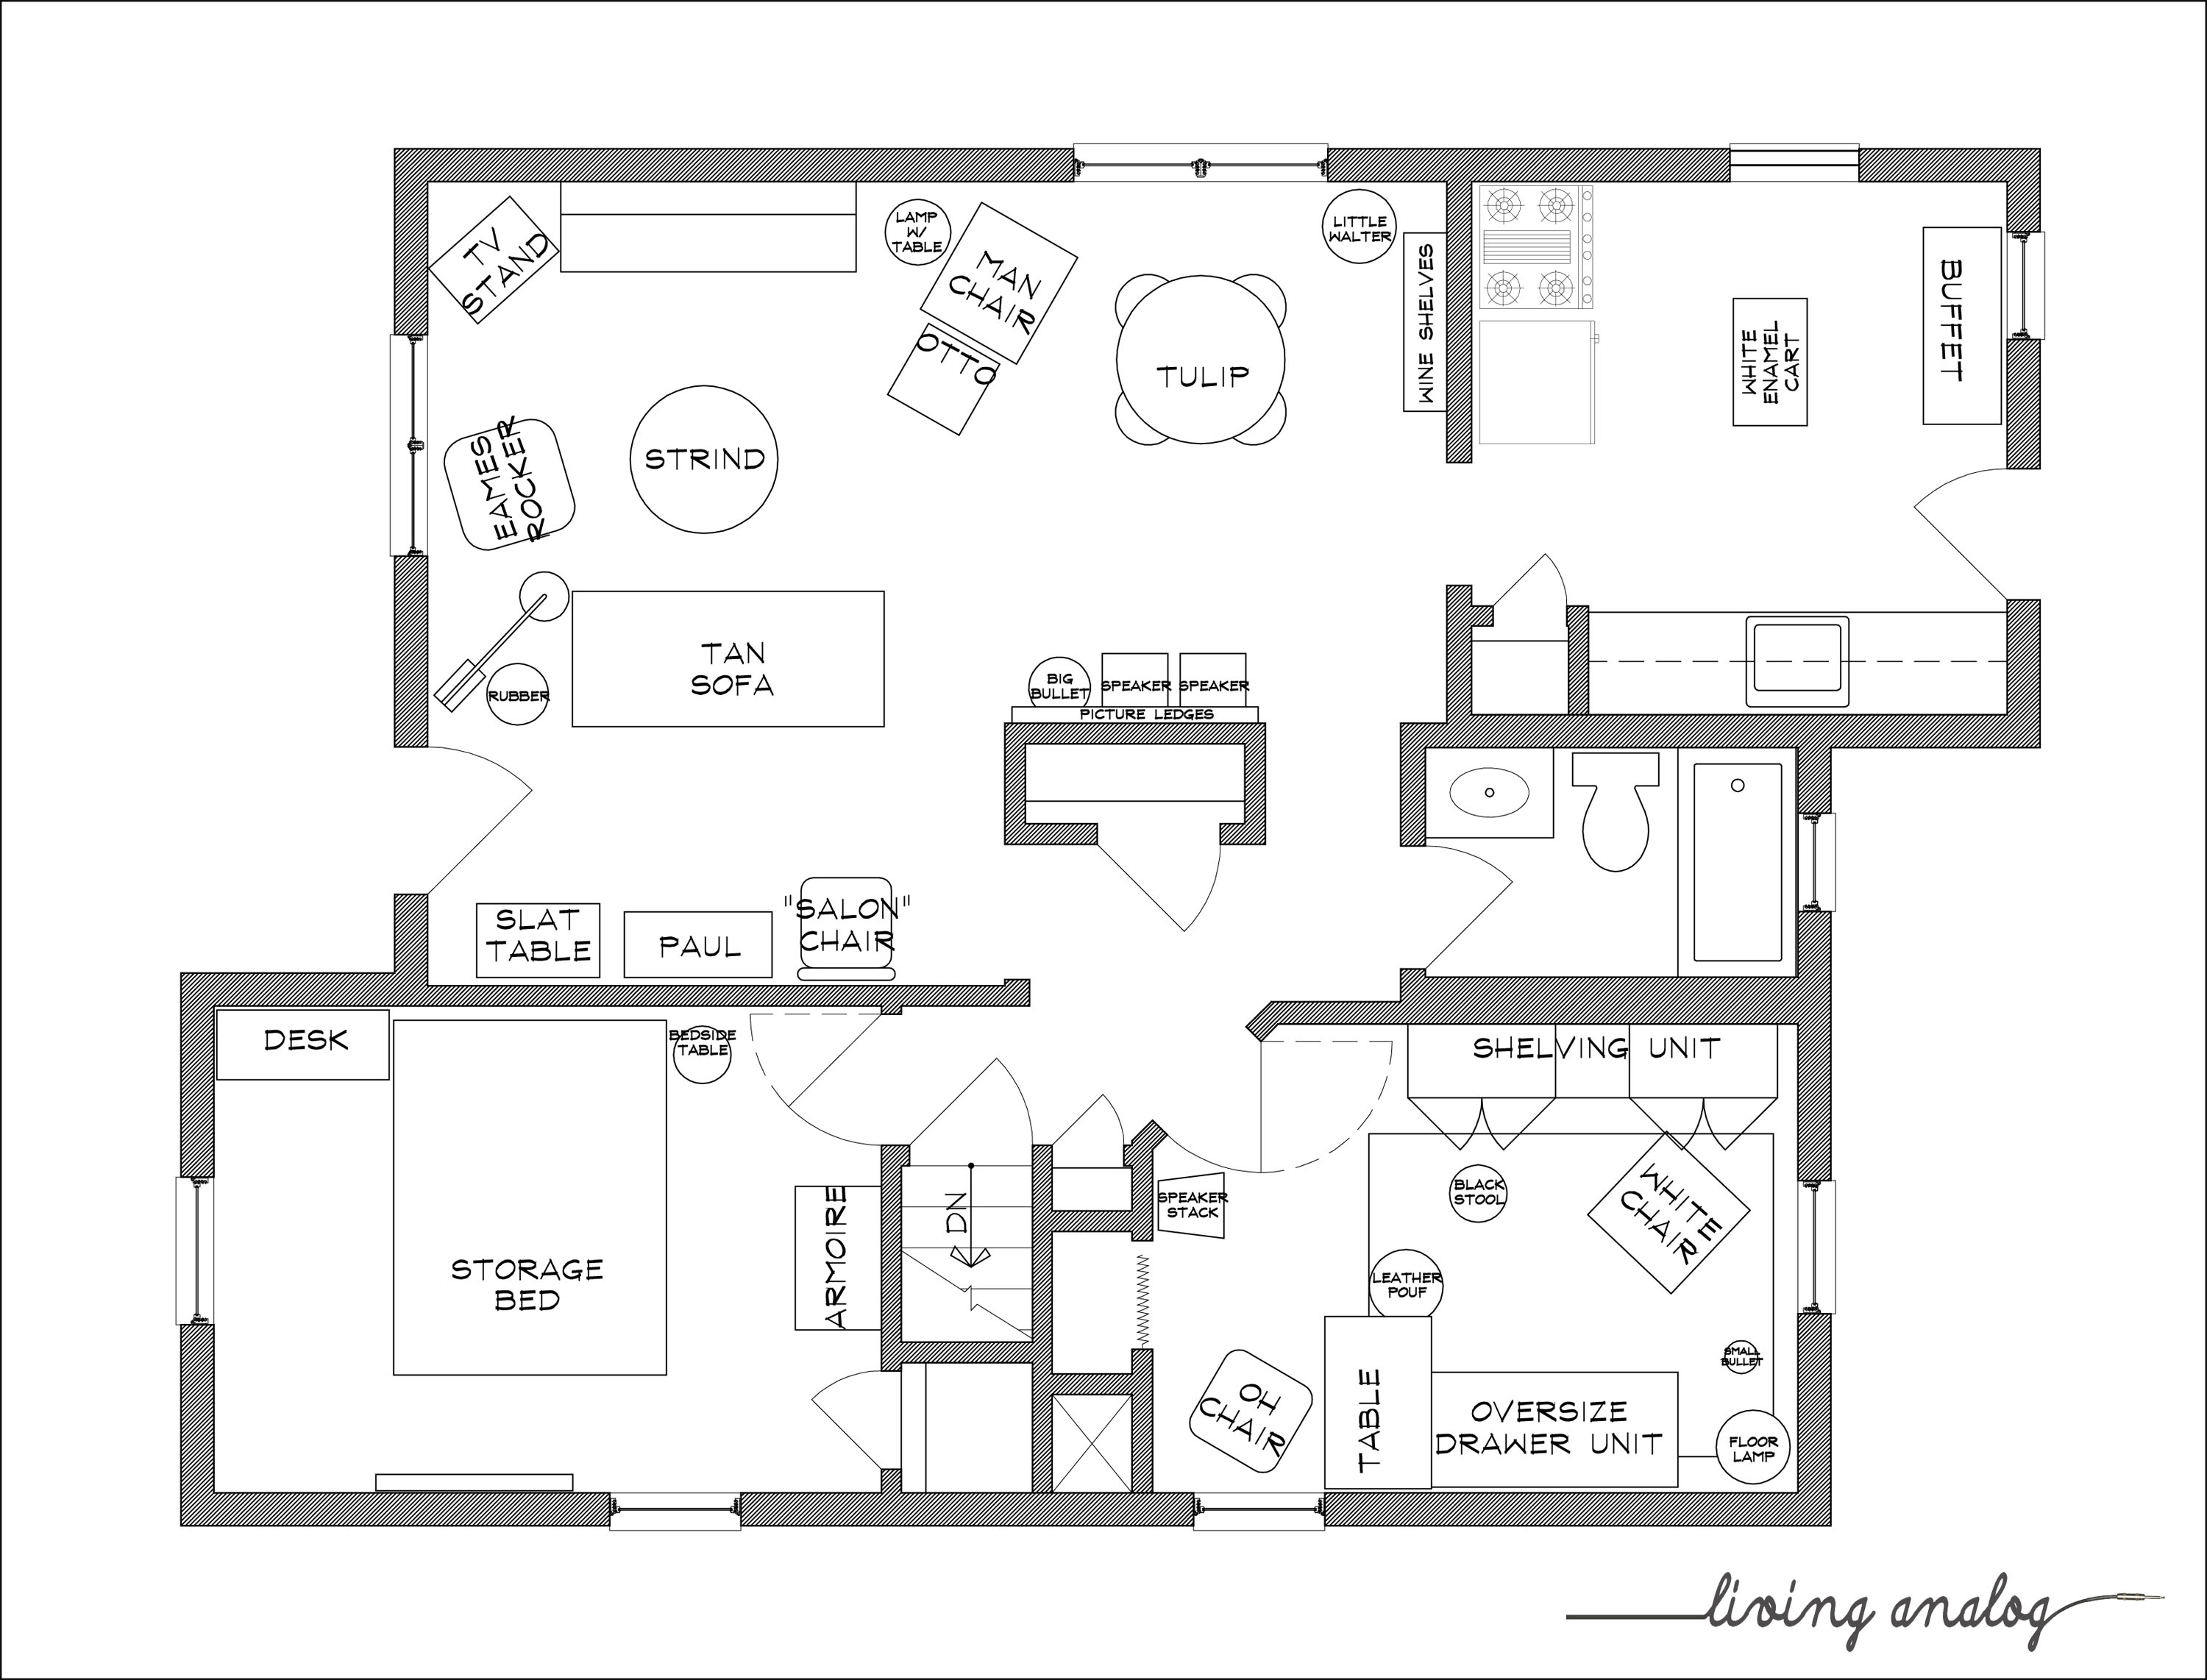 Free furniture templates for floor plans for Floor plans online free